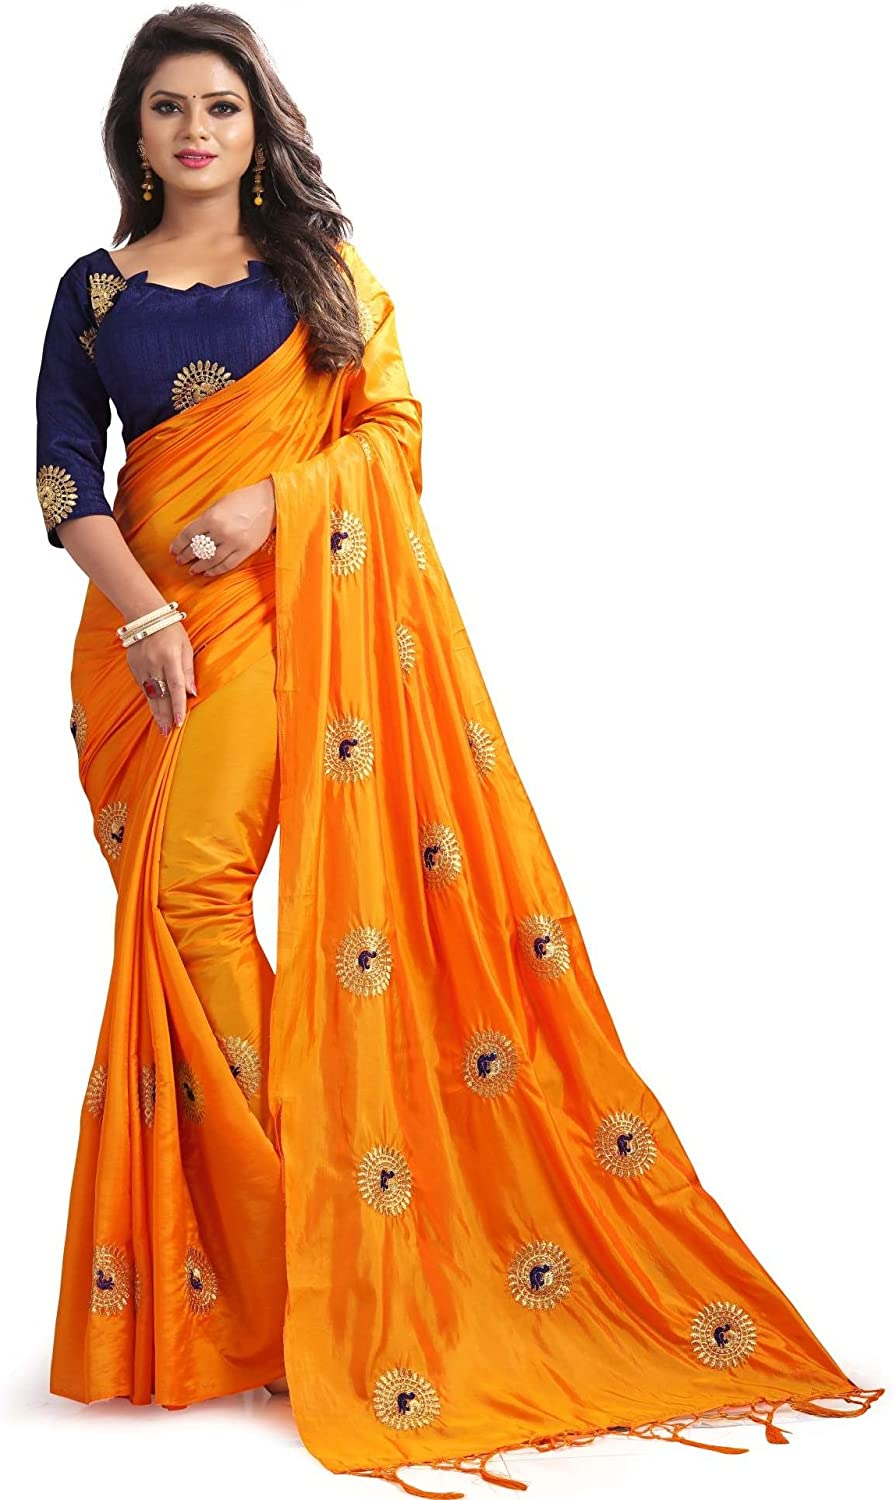 Hiral Designer Indian Women Multi color Cotton Paper Silk & Heavy embroidery Work Party Wear Saree With Blouse piece Indian.